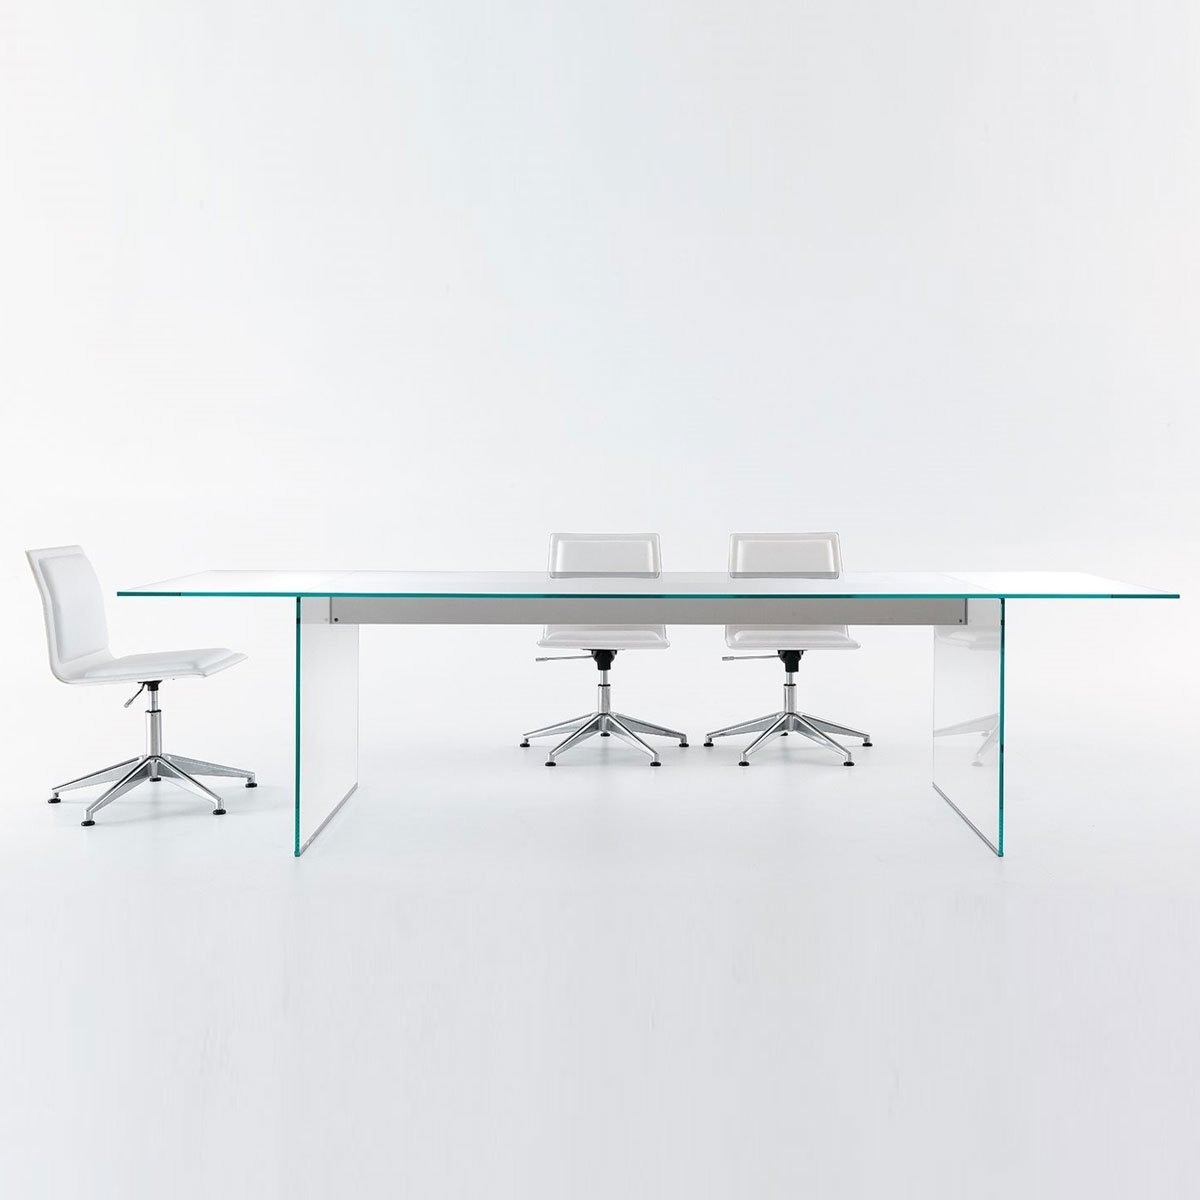 Air glass table gallotti & Radice